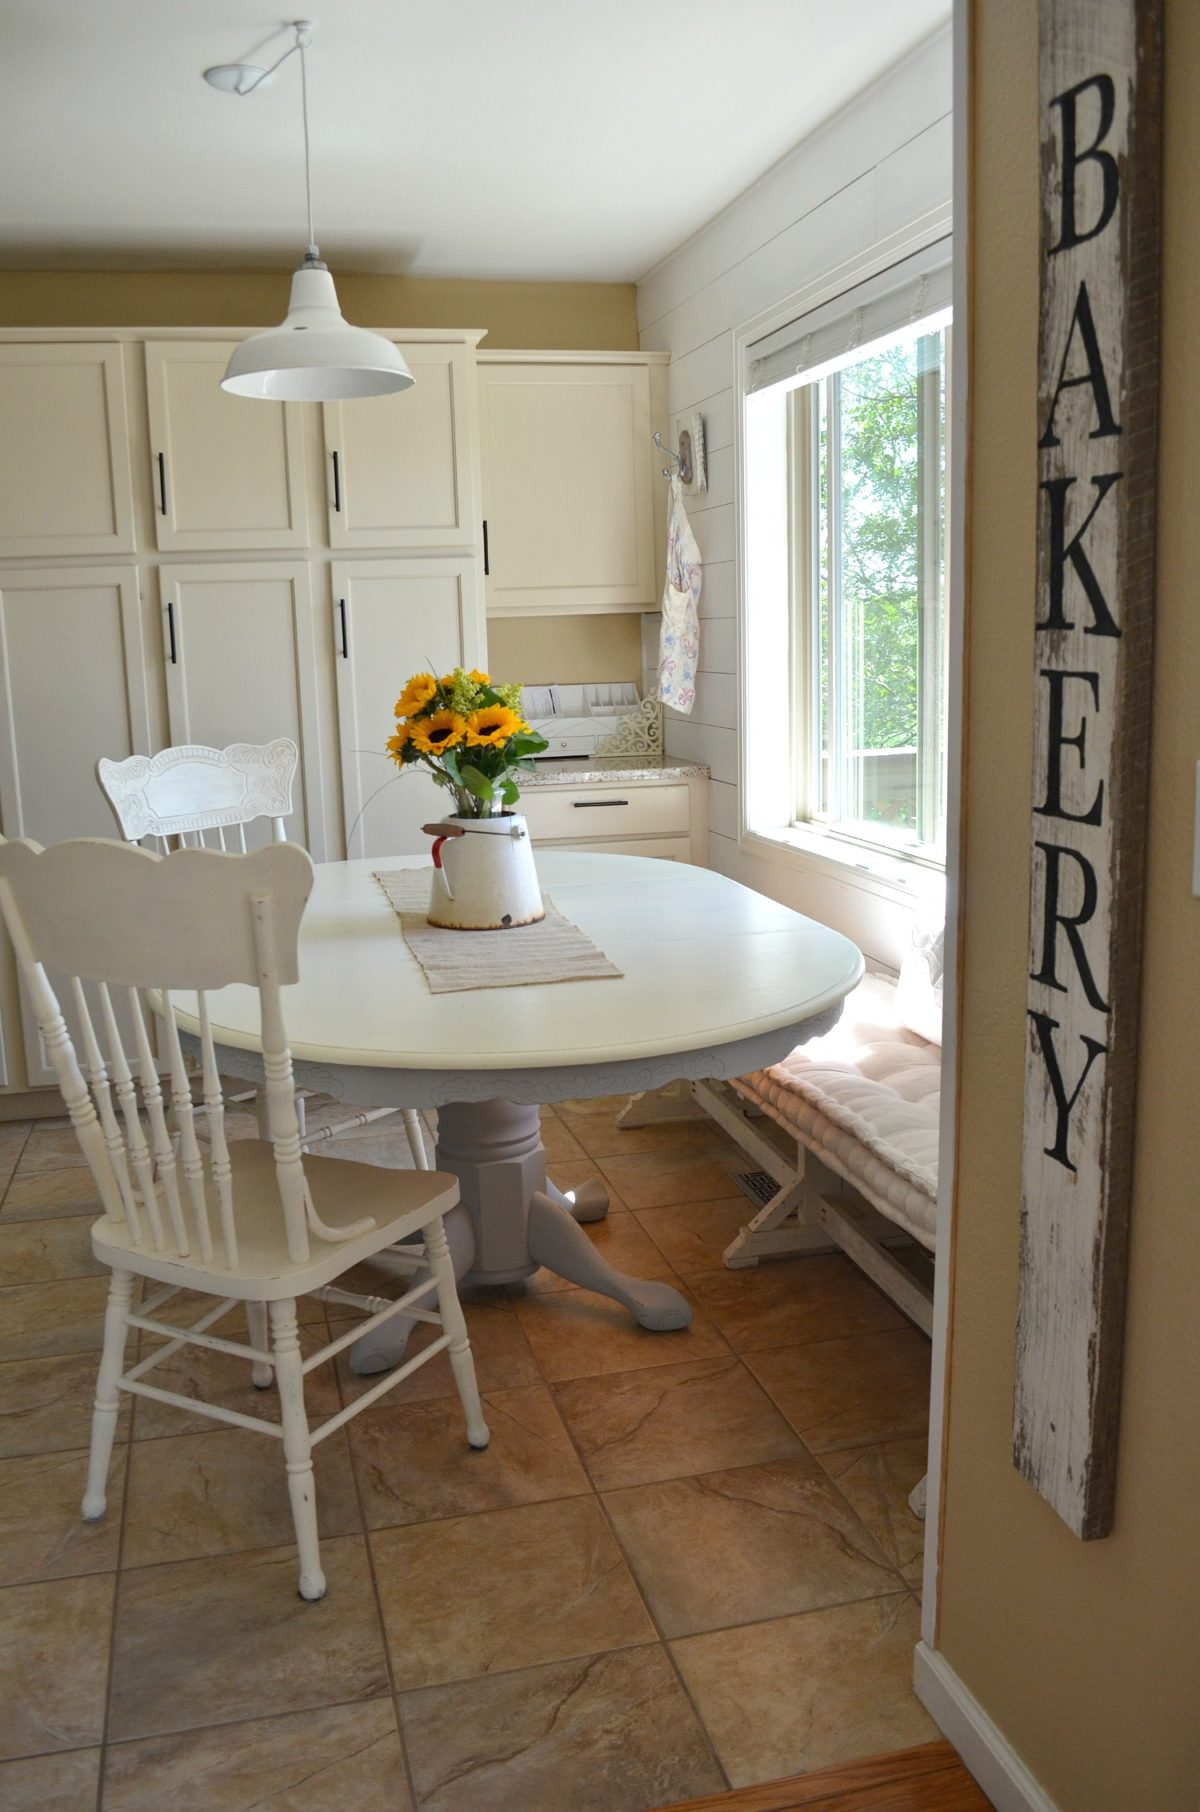 Diy Chalk Painted Farmhouse Style Table 8 Little Vintage